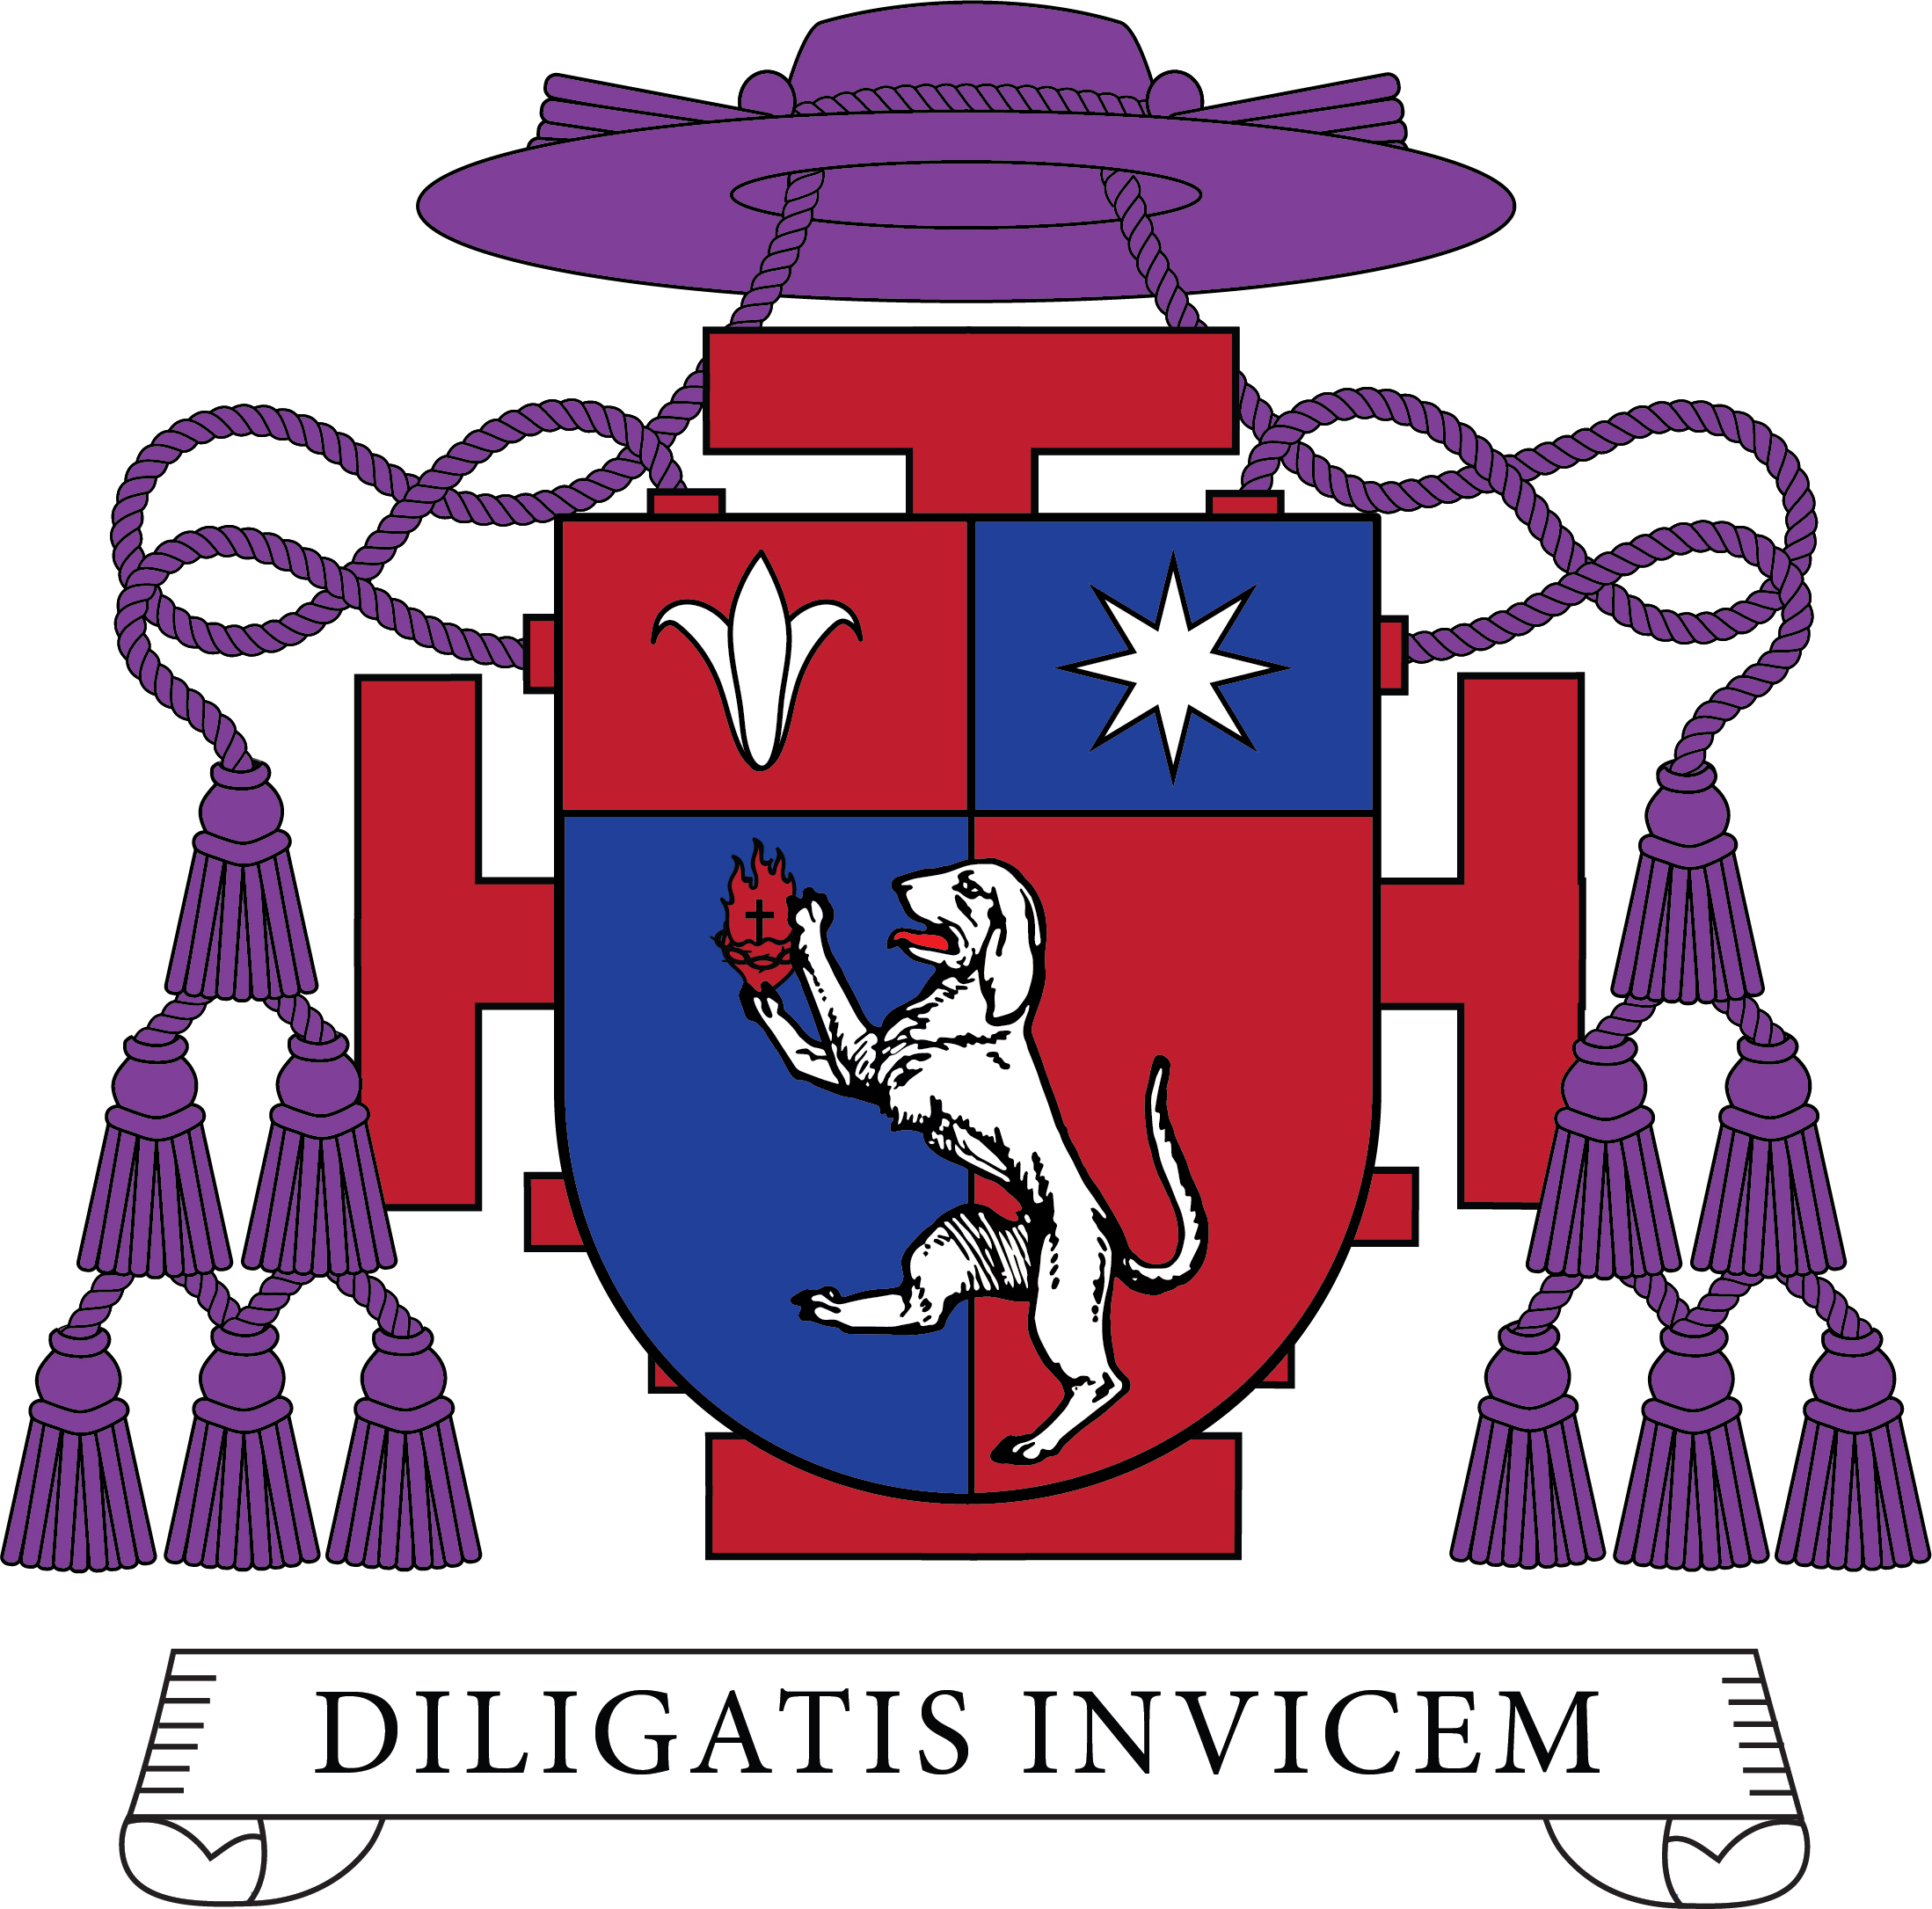 A Monsignor's Coat of Arms